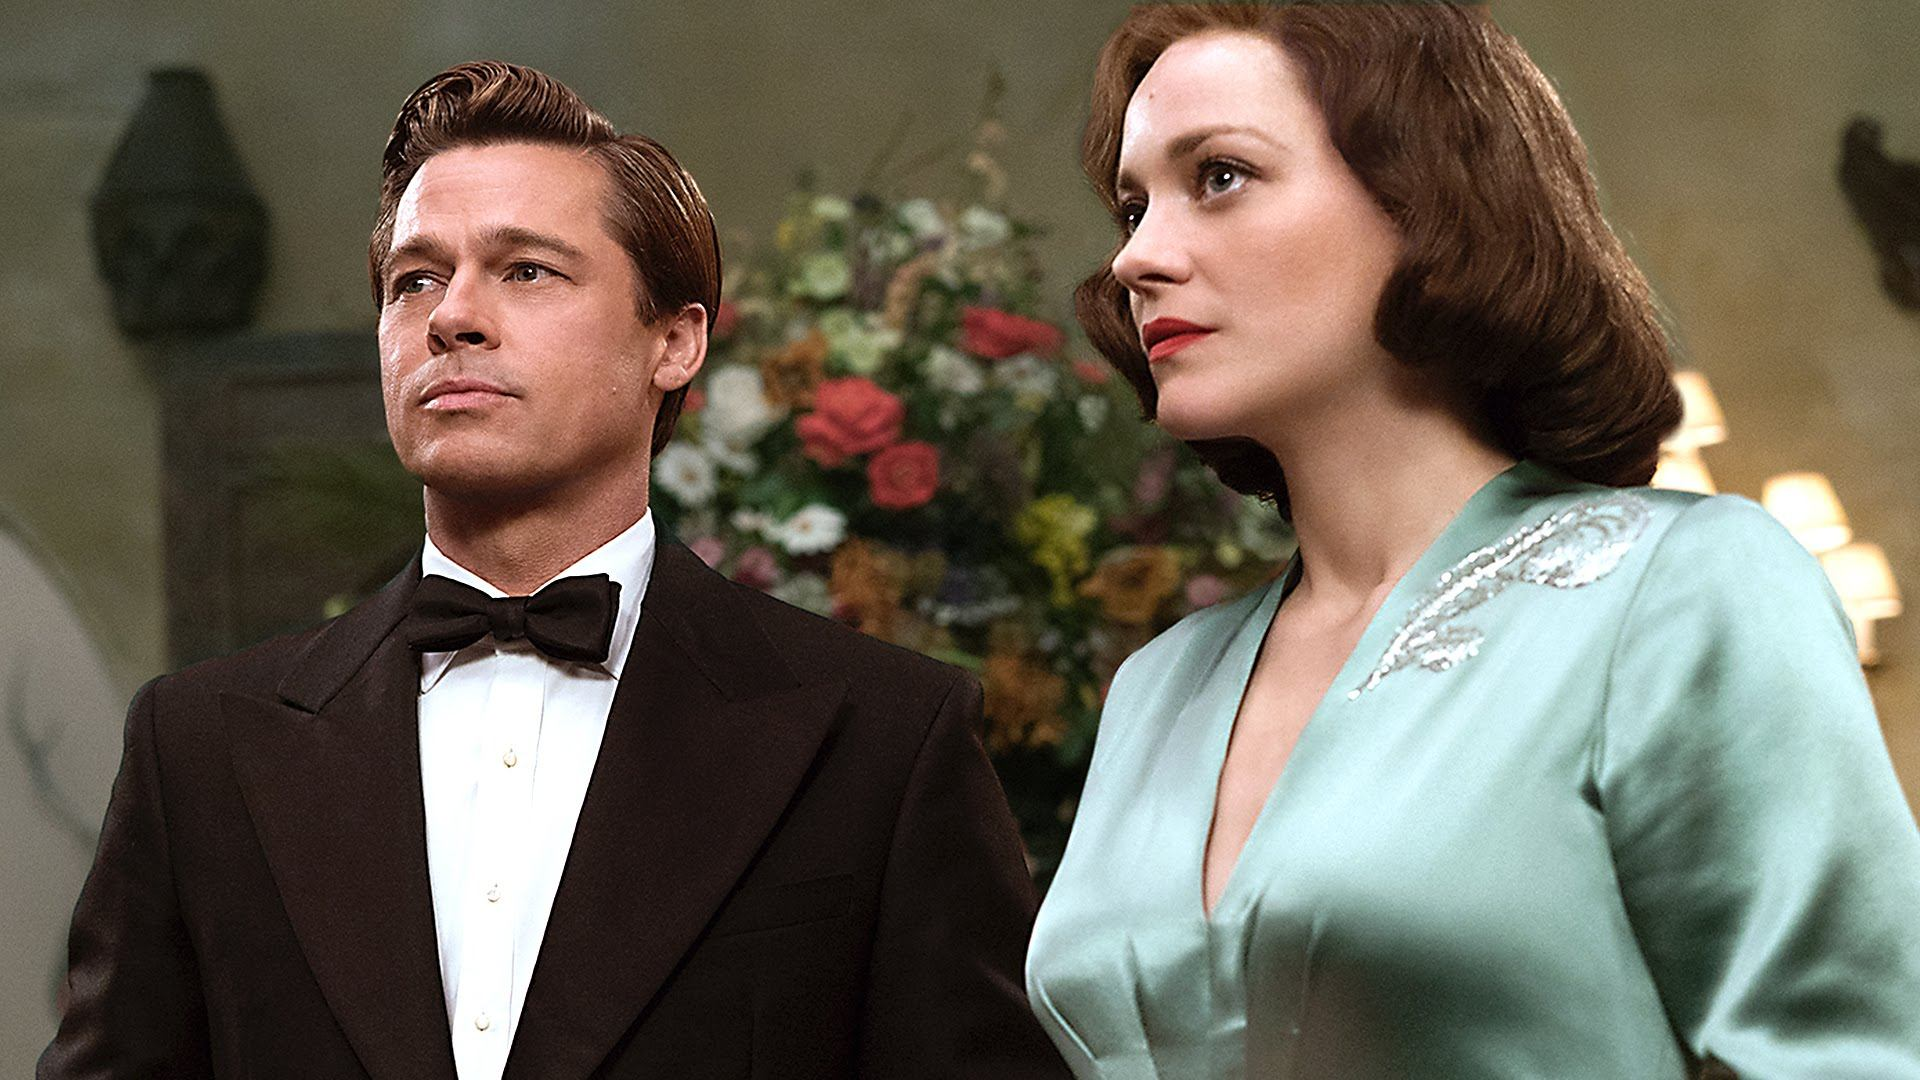 Brad Pitt and Marion Cotillard in Allied (Paramount Pictures)